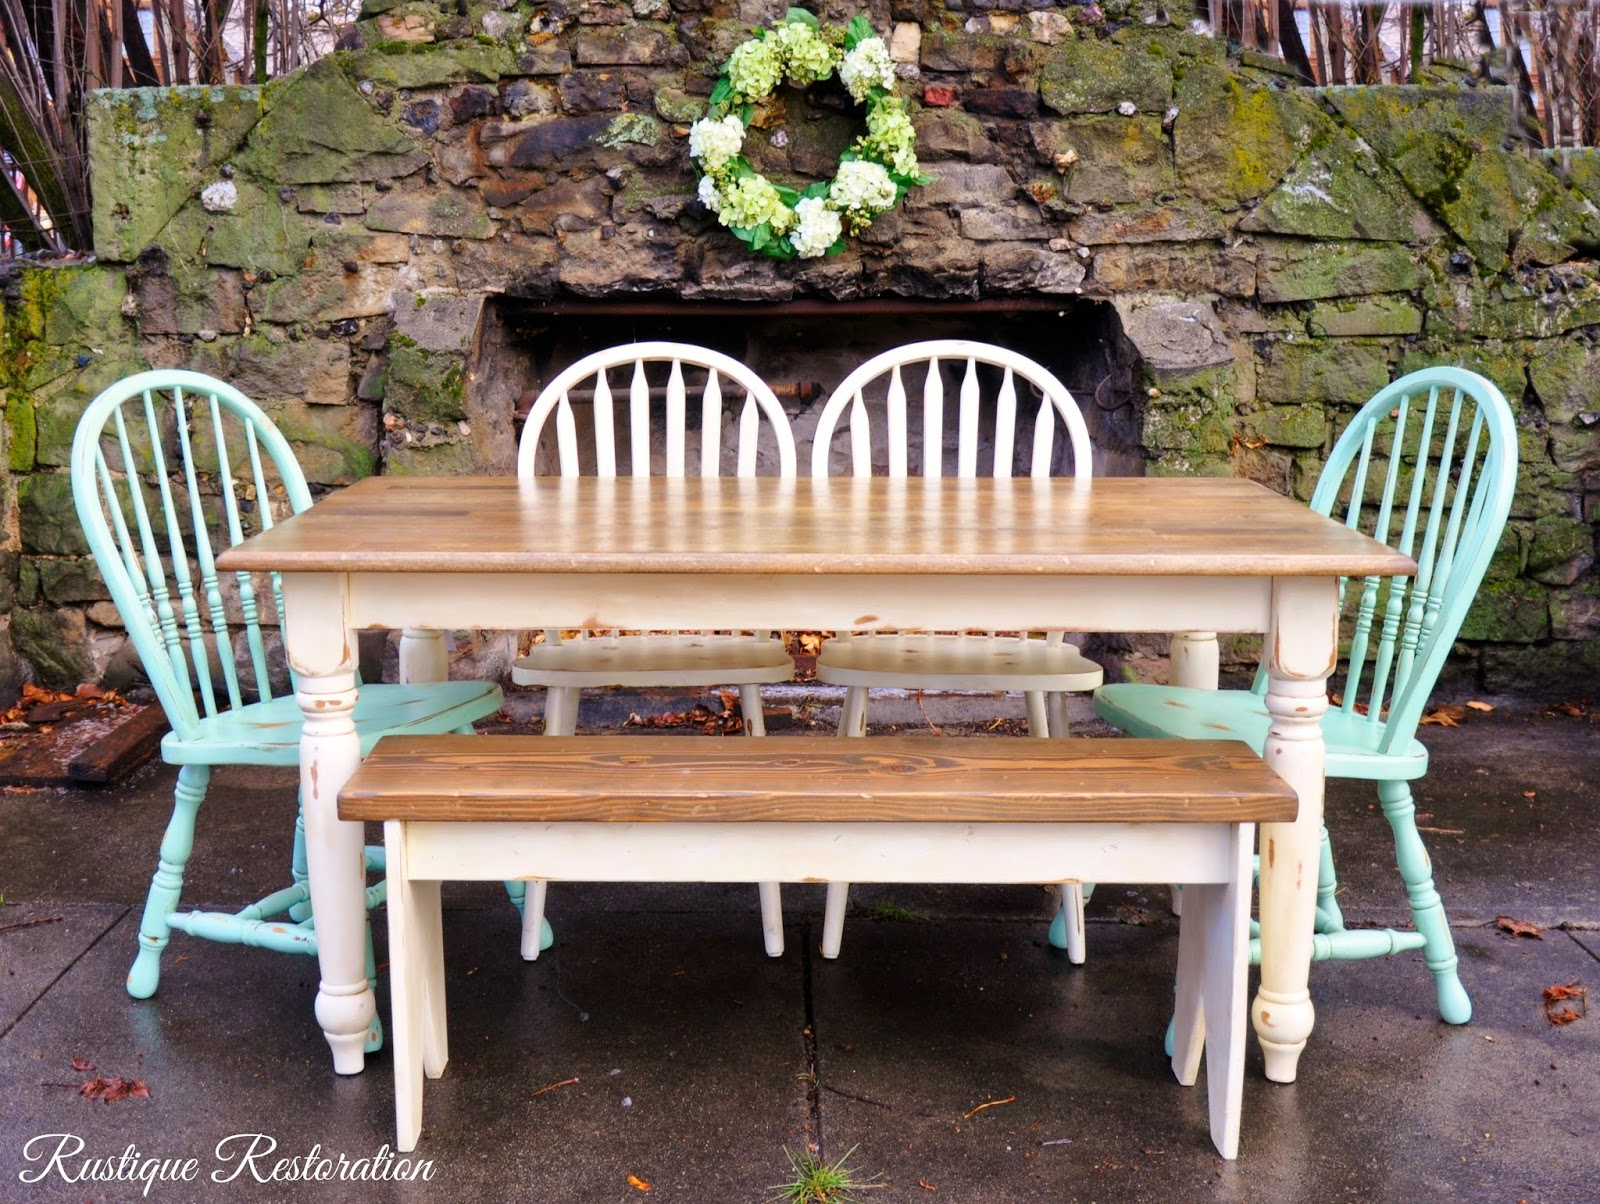 I Painted The Table And Bench And Two Chairs In A Creamy White, And Heavily  Distressed Them. Then After I Sprayed One Coat Of Lacquer Over It All, ...